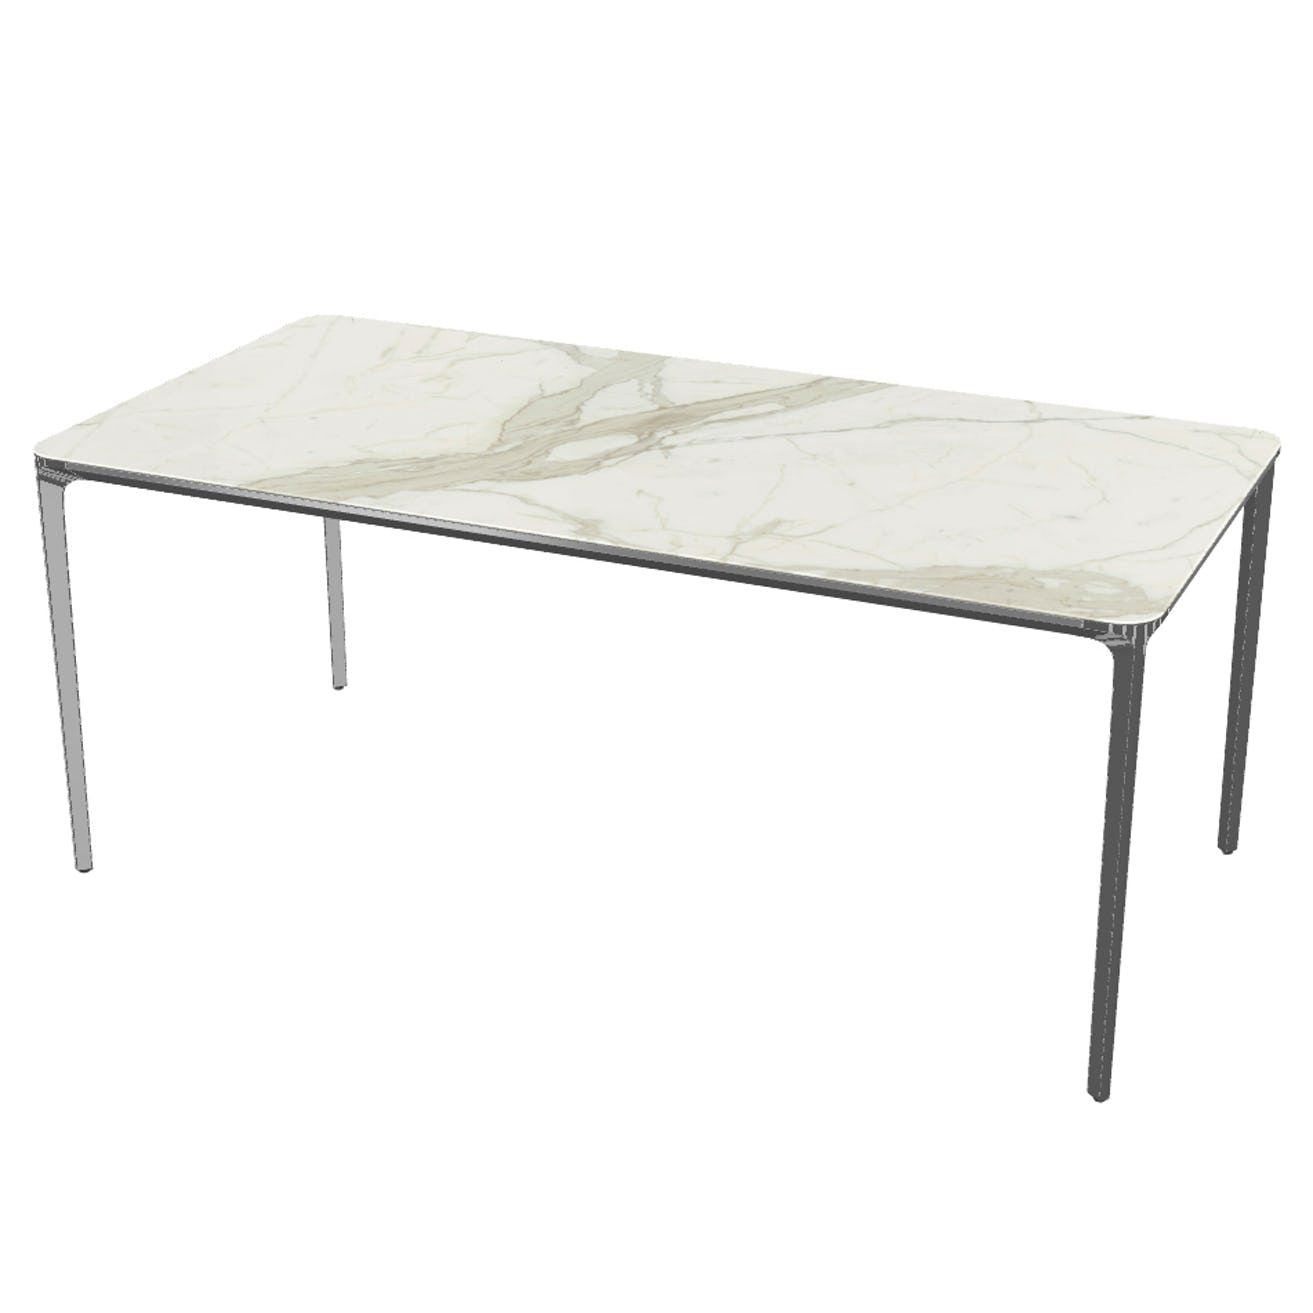 Slim Dining Table By Sovet Now Available At Haute Living